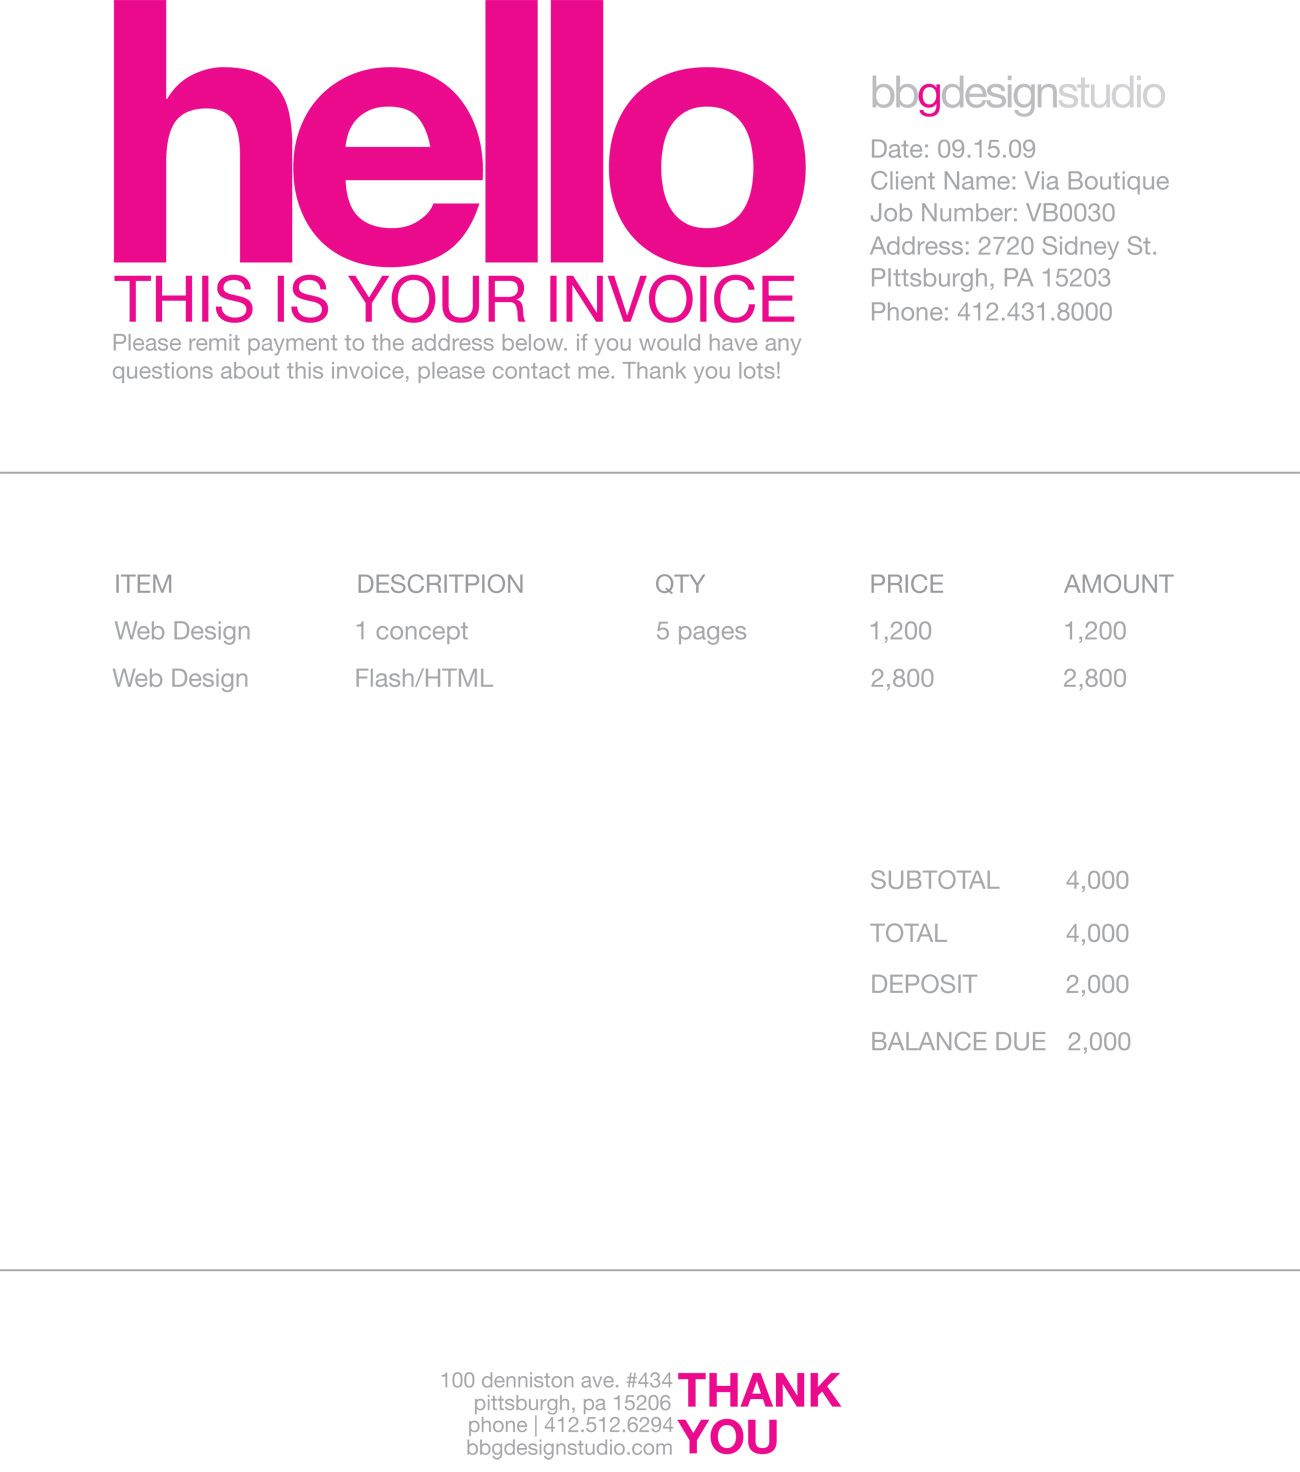 Coolmathgamesus  Splendid  Images About Invoice Design On Pinterest With Fetching Invoice Template Pdf Besides Free Invoice Maker Furthermore Sample Invoice Template With Delectable Po Number On Invoice Also Invoices To Go In Addition Free Invoice Templates And Invoice Definition As Well As Sample Invoice Additionally Difference Between Invoice And Bill From Pinterestcom With Coolmathgamesus  Fetching  Images About Invoice Design On Pinterest With Delectable Invoice Template Pdf Besides Free Invoice Maker Furthermore Sample Invoice Template And Splendid Po Number On Invoice Also Invoices To Go In Addition Free Invoice Templates From Pinterestcom